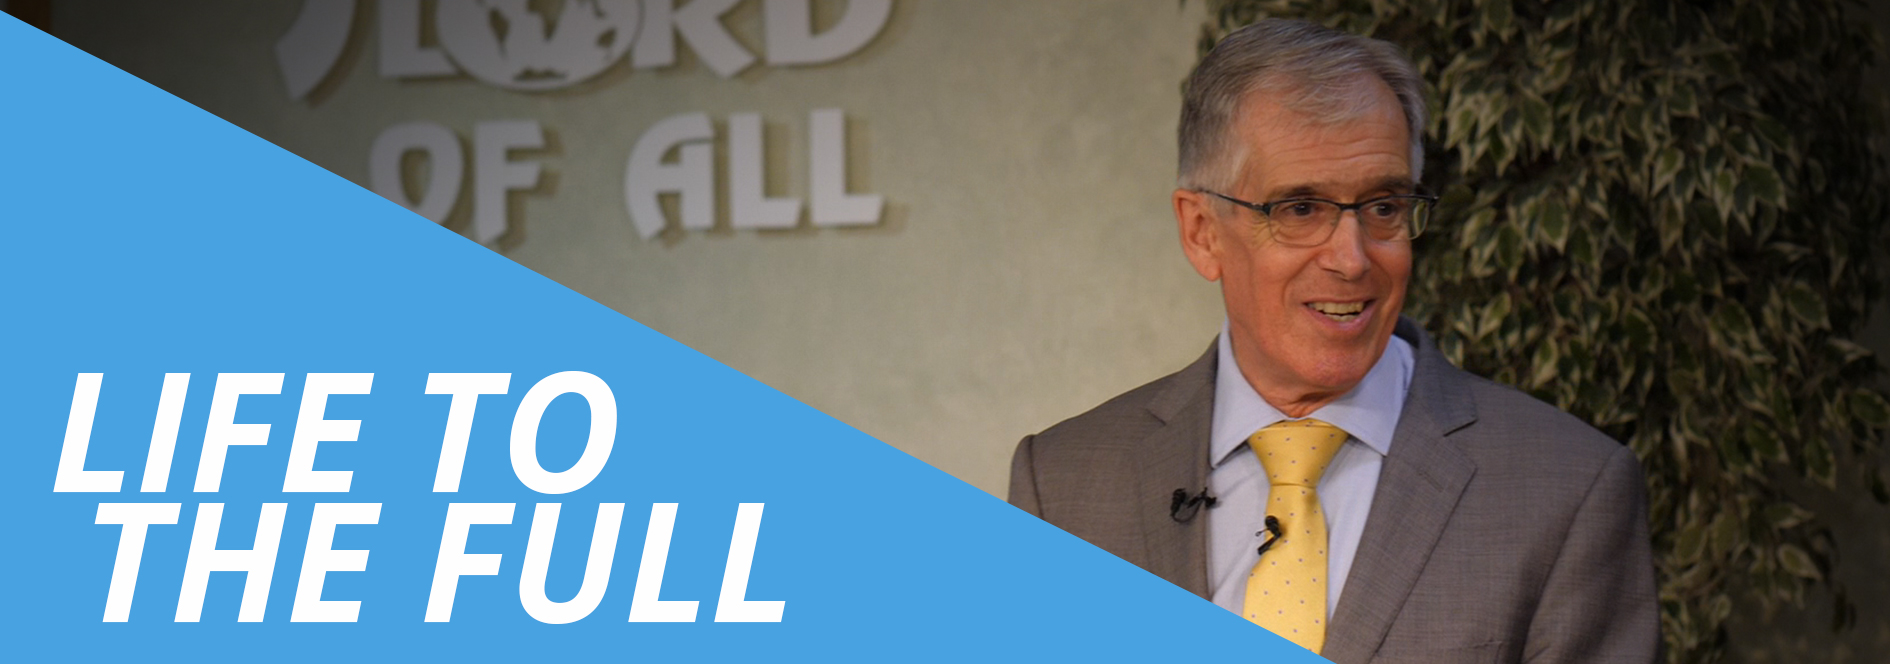 """Hugh's brand new teaching series """" Life to the Full """" is now available stream, download and watch online."""